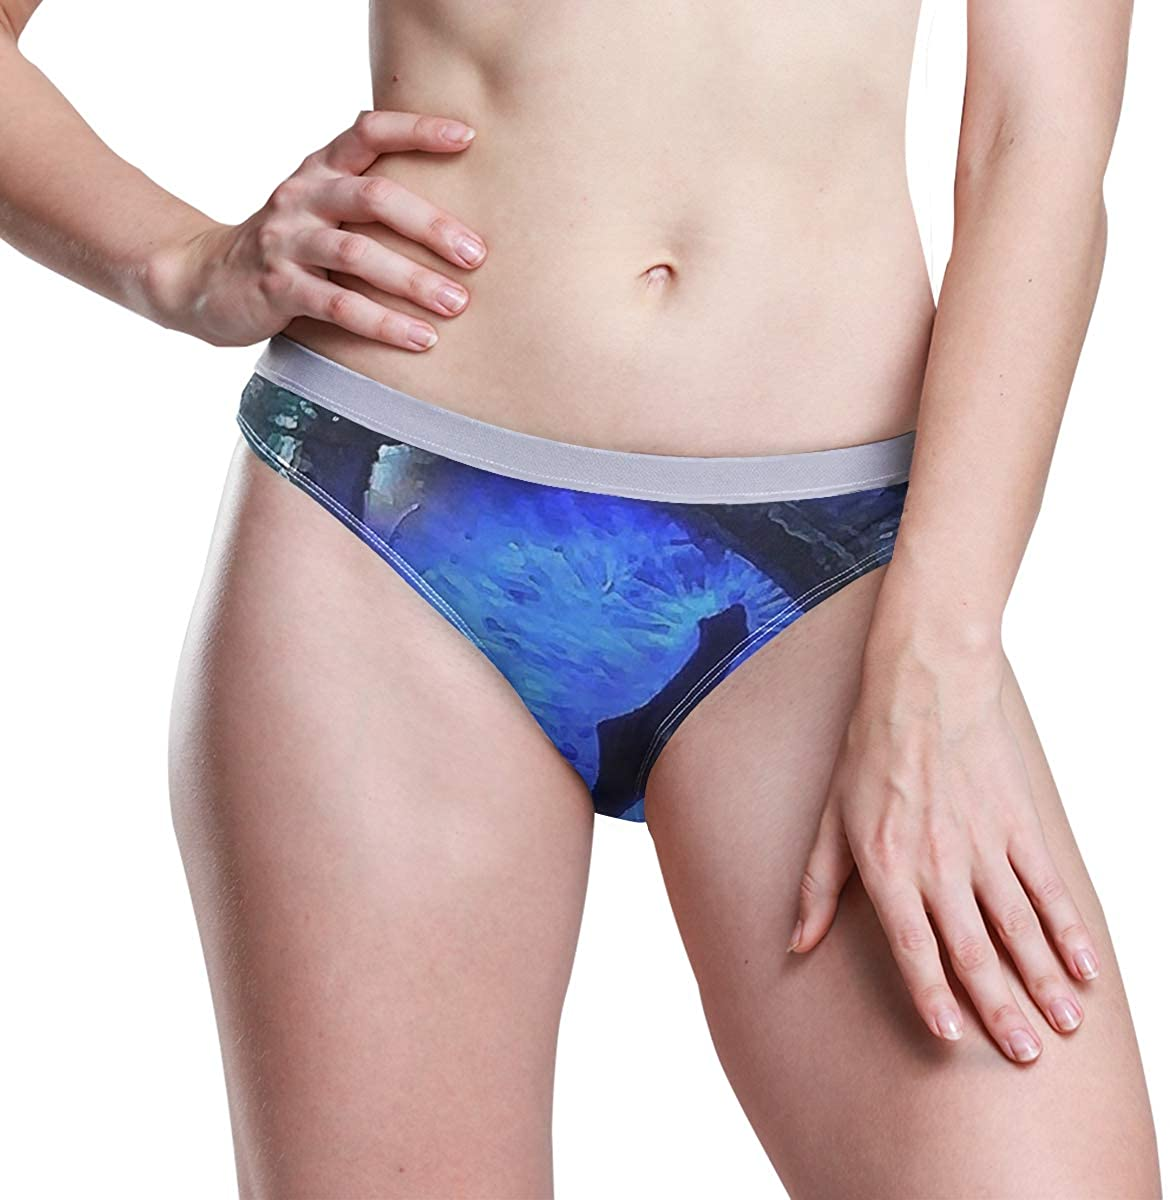 SLHFPX Blue Mysterious Dragon Eye Women's Underwear Ladies Hipster Panties Low Rise Briefs Thong